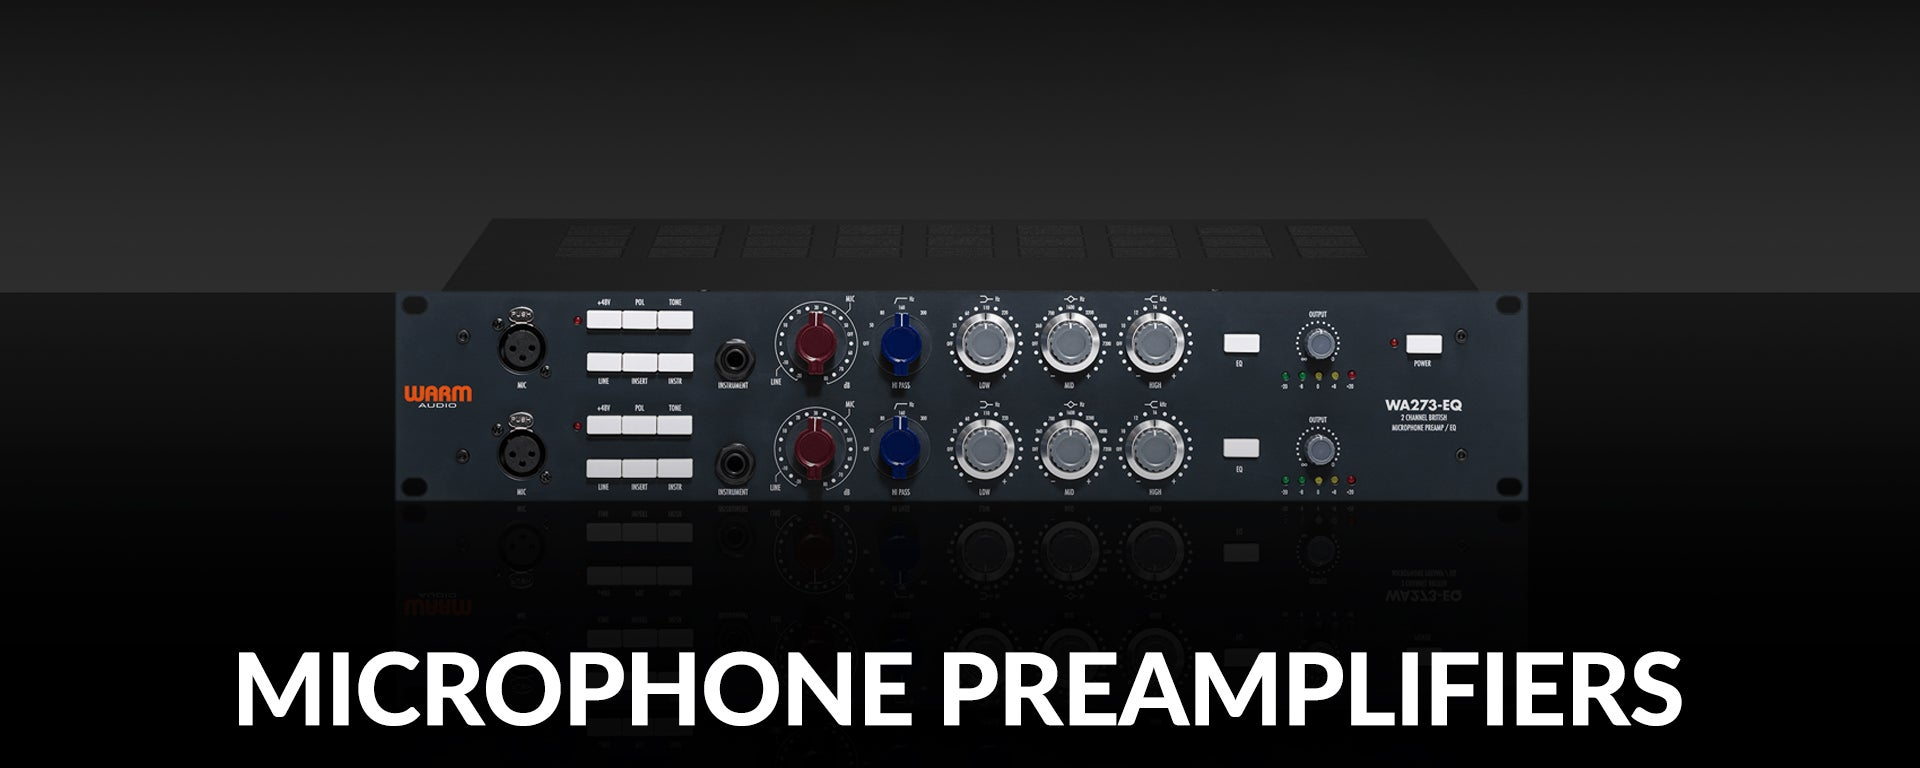 Microphone Preamps at SamAsh.com